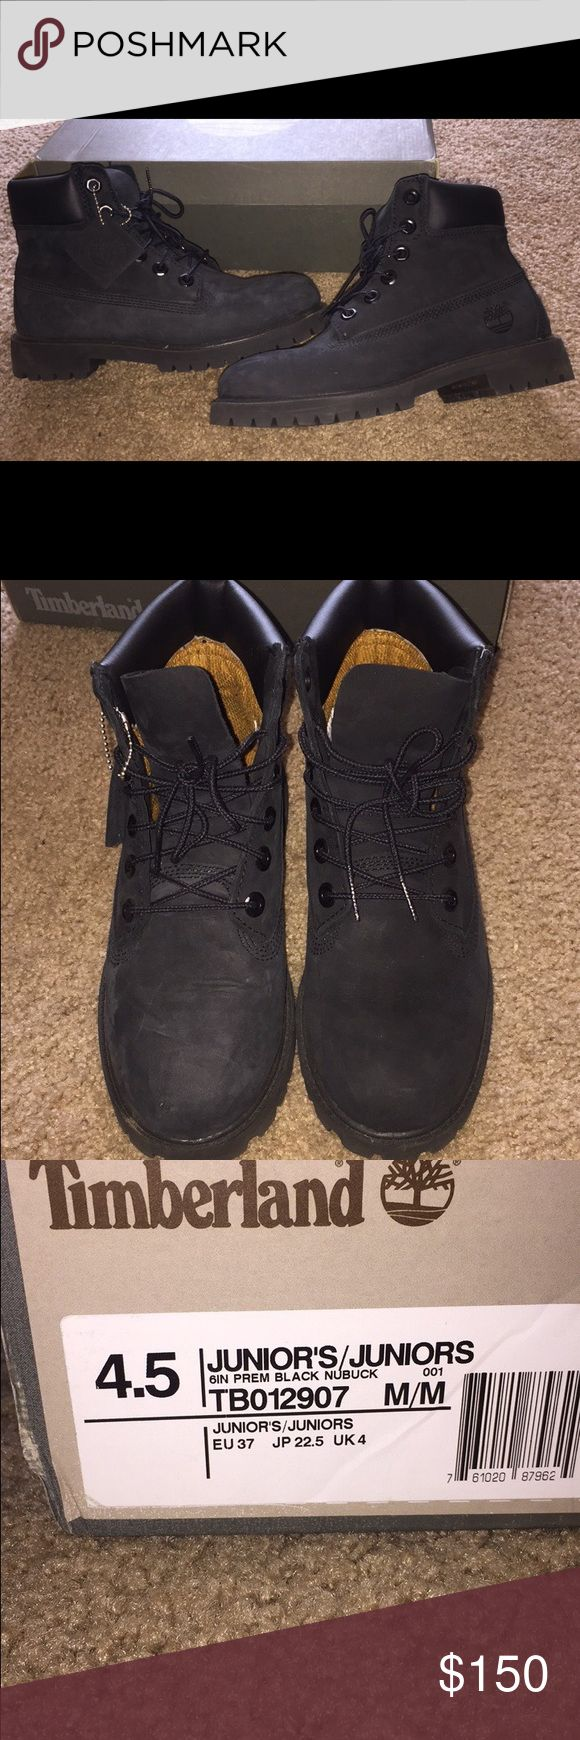 Black timberland boots Great condition, worn only a few times, 4.5 junior size fits size 6-6.5 women's Timberland Shoes